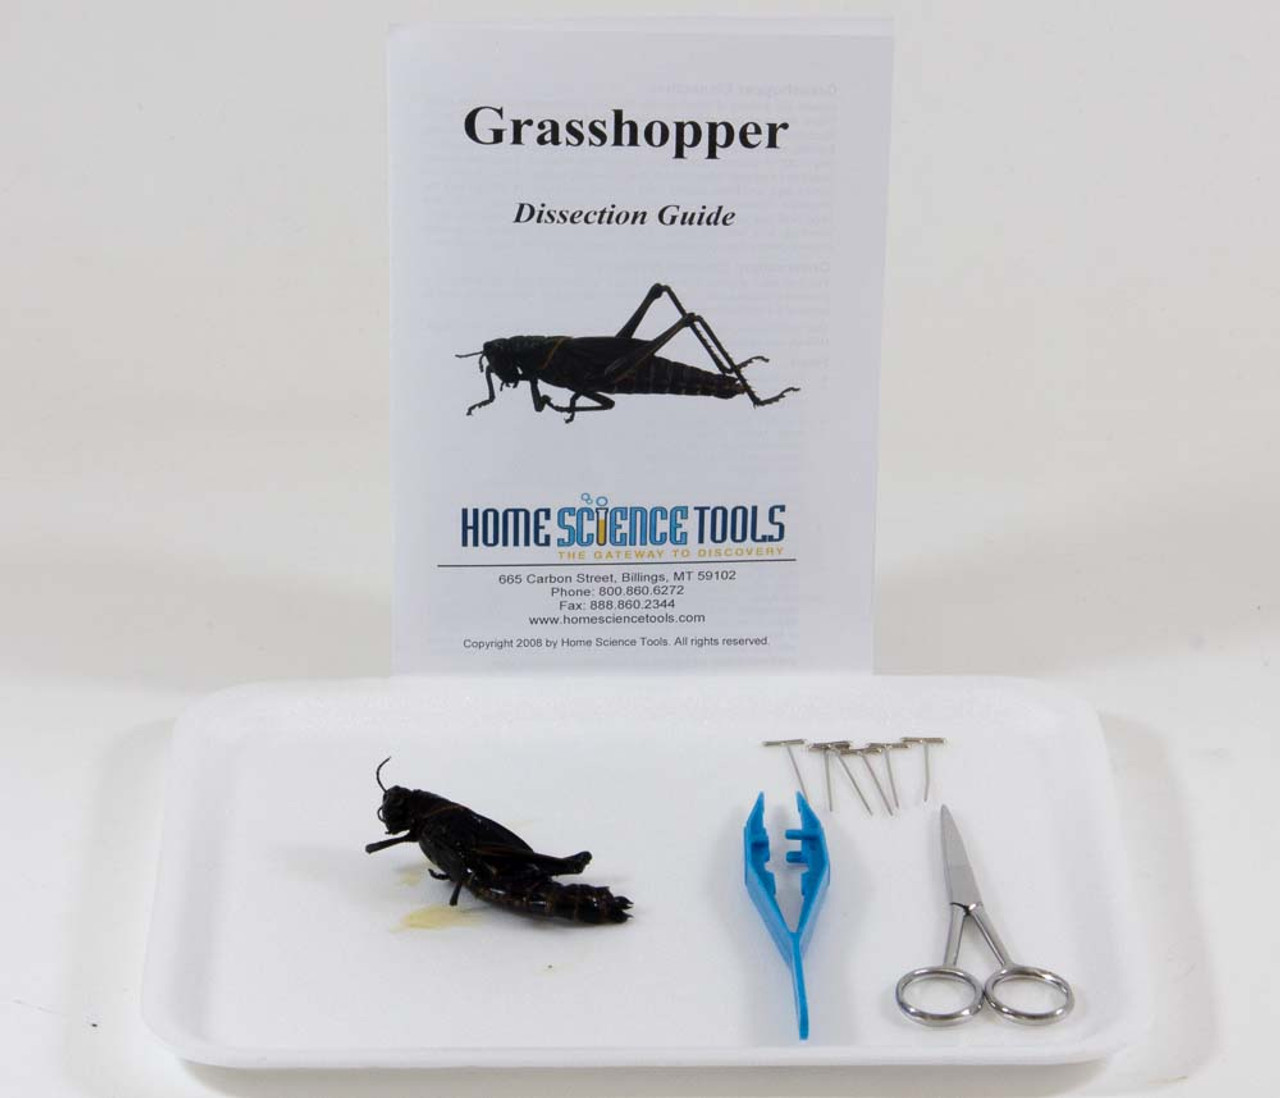 hight resolution of Grasshopper Dissection Kit for Classroom Anatomy   HST